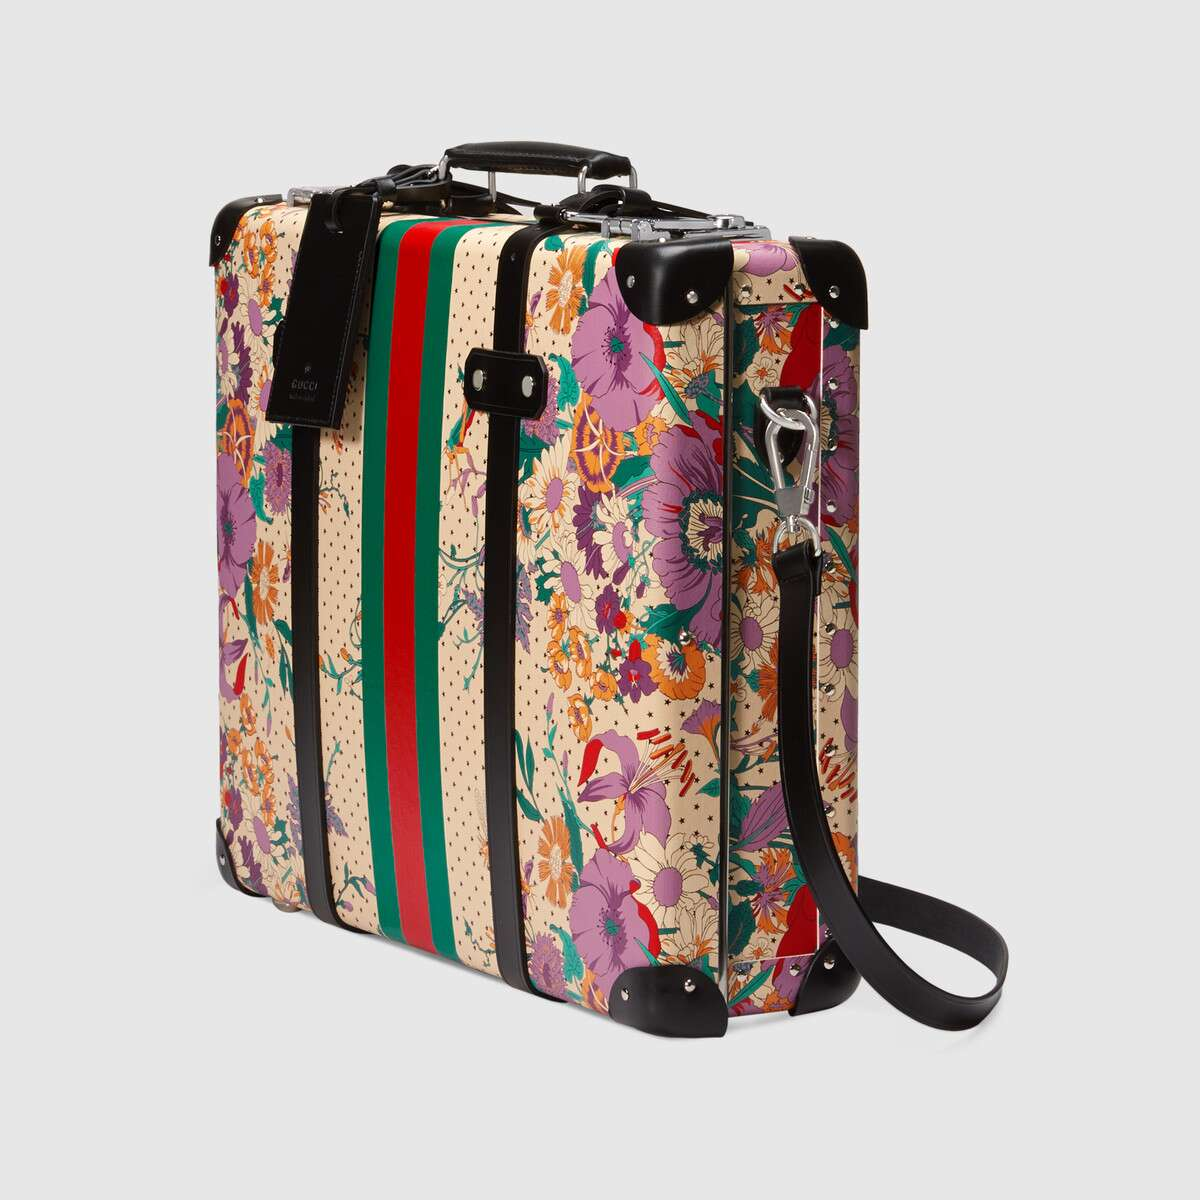 Gucci Globe-Trotter briefcase with floral print